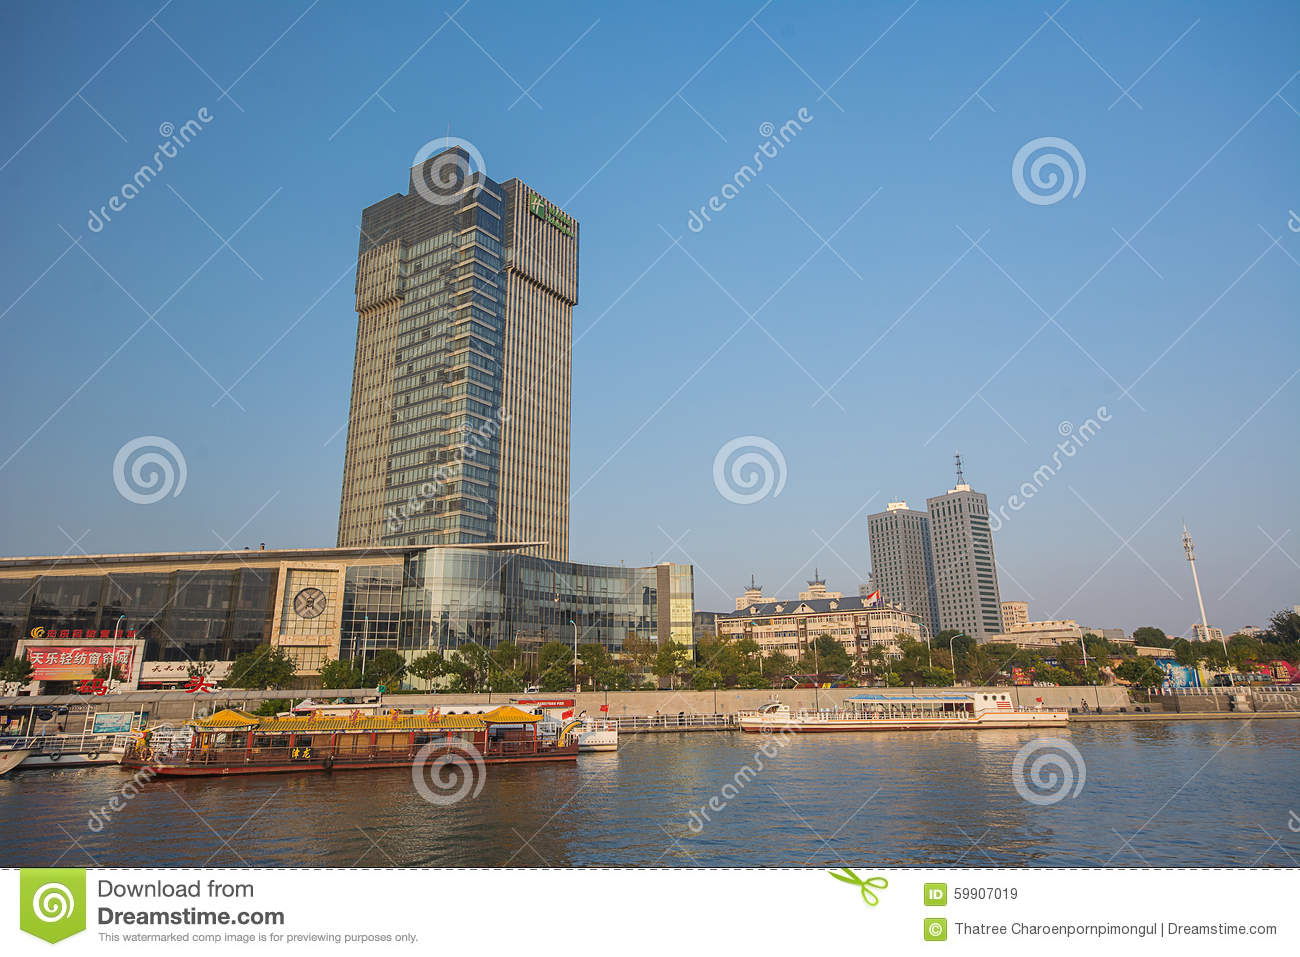 Holiday Inn building on Tianwei rd. in Tianjin city,China.